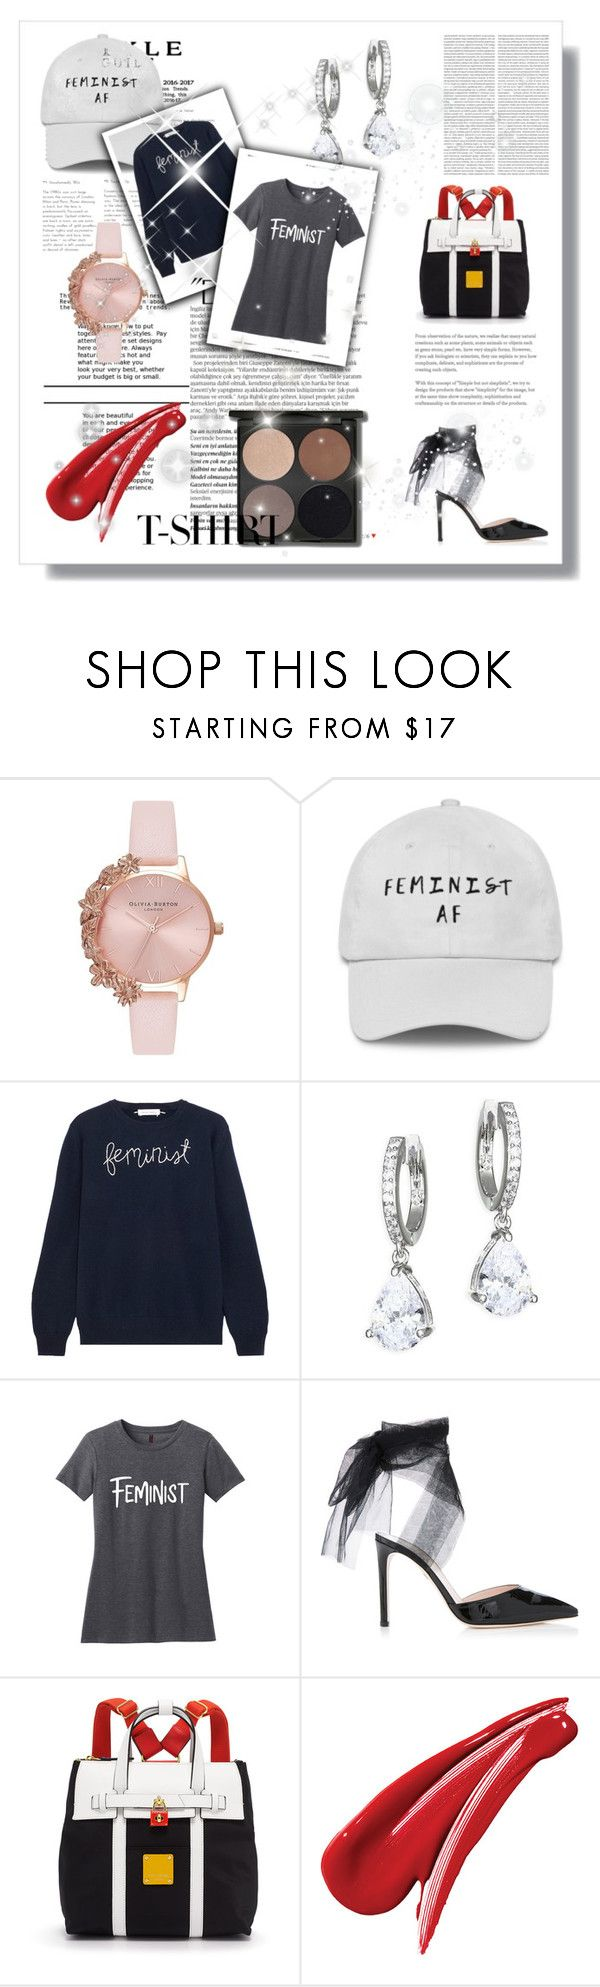 """Dress Up a T-shirt"" by katiephan on Polyvore featuring Olivia Burton, Lingua Franca, Kate Spade, Henri Bendel, Balmain and MyFaveTshirt"